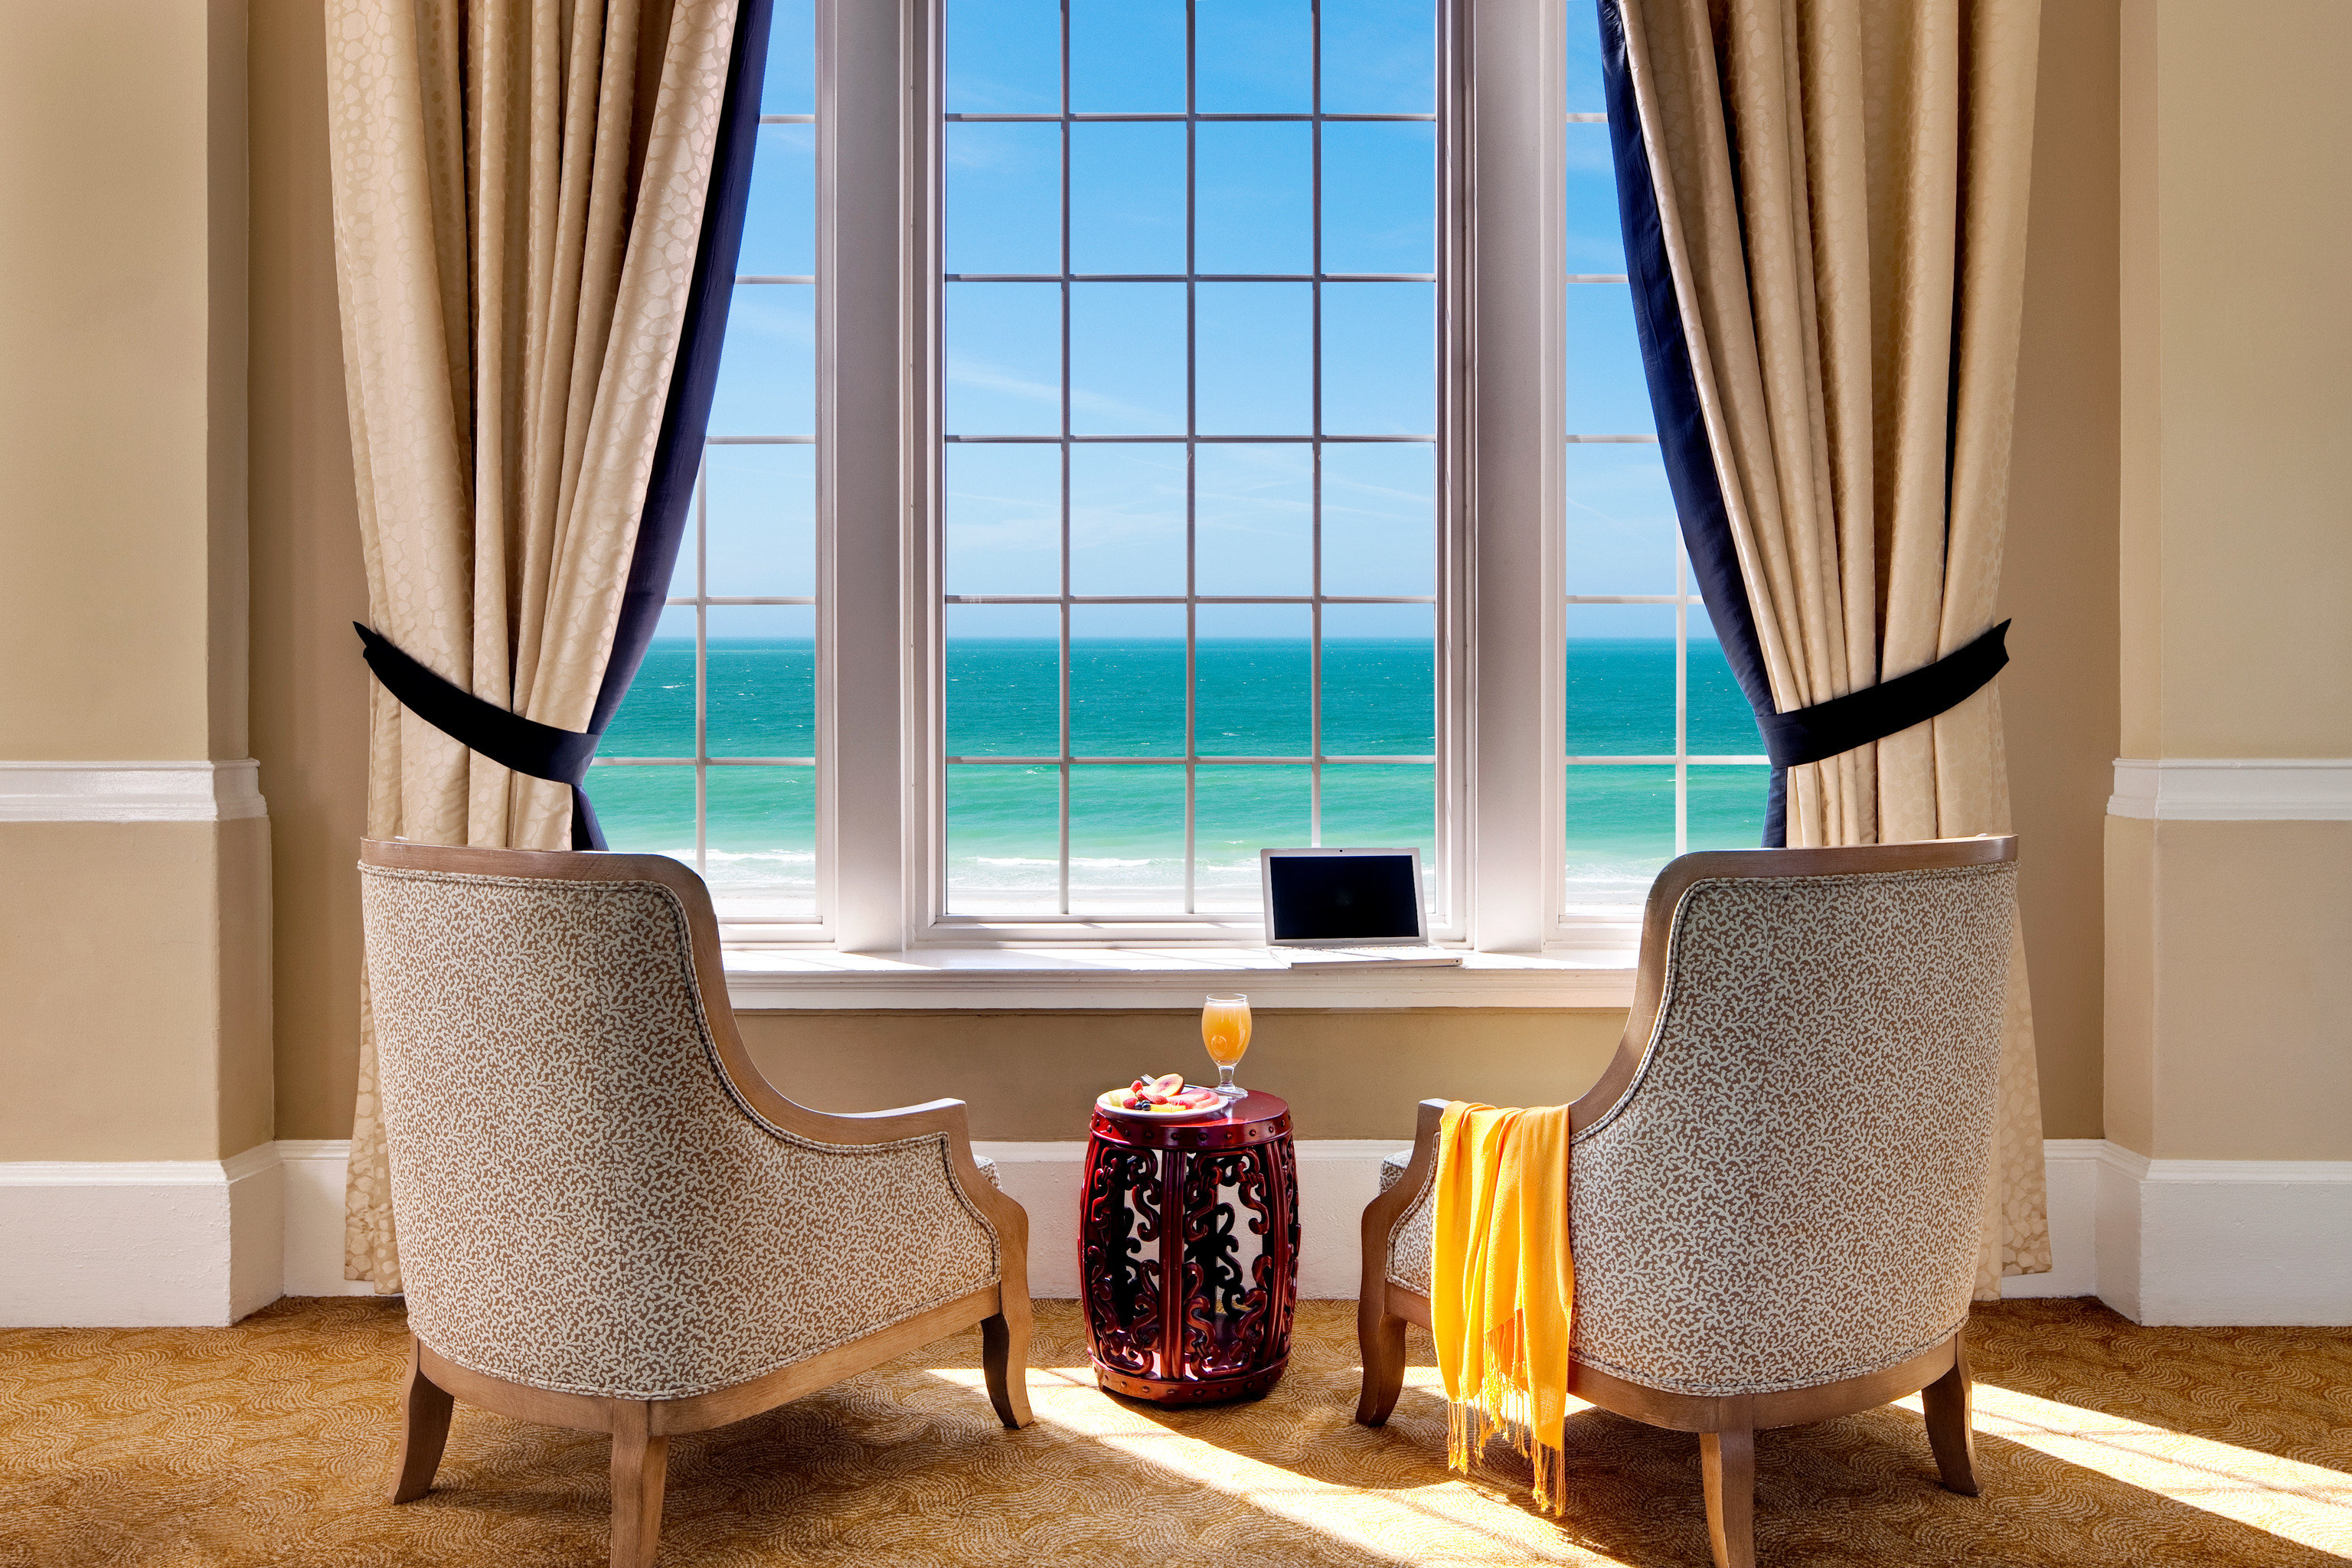 Beachfront Classic Drink Family Resort curtain chair property Suite living room home window treatment textile